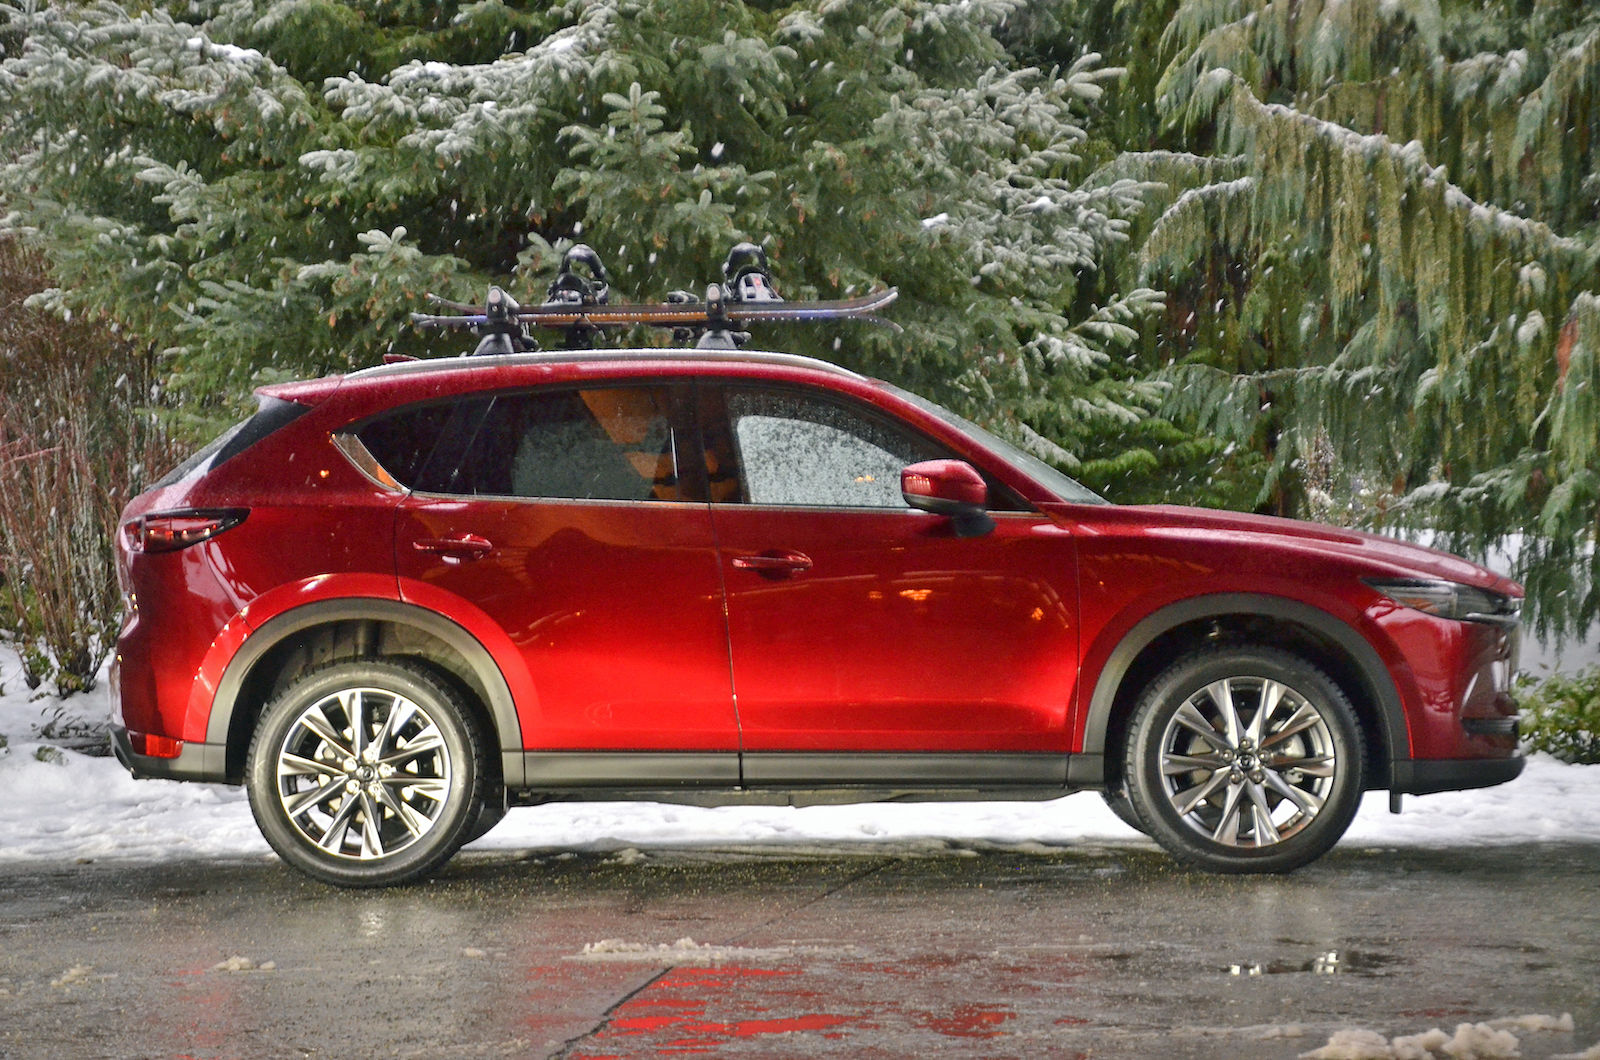 A SIGNATURE EDITION FOR THE NEW 2019 MAZDA CX-5